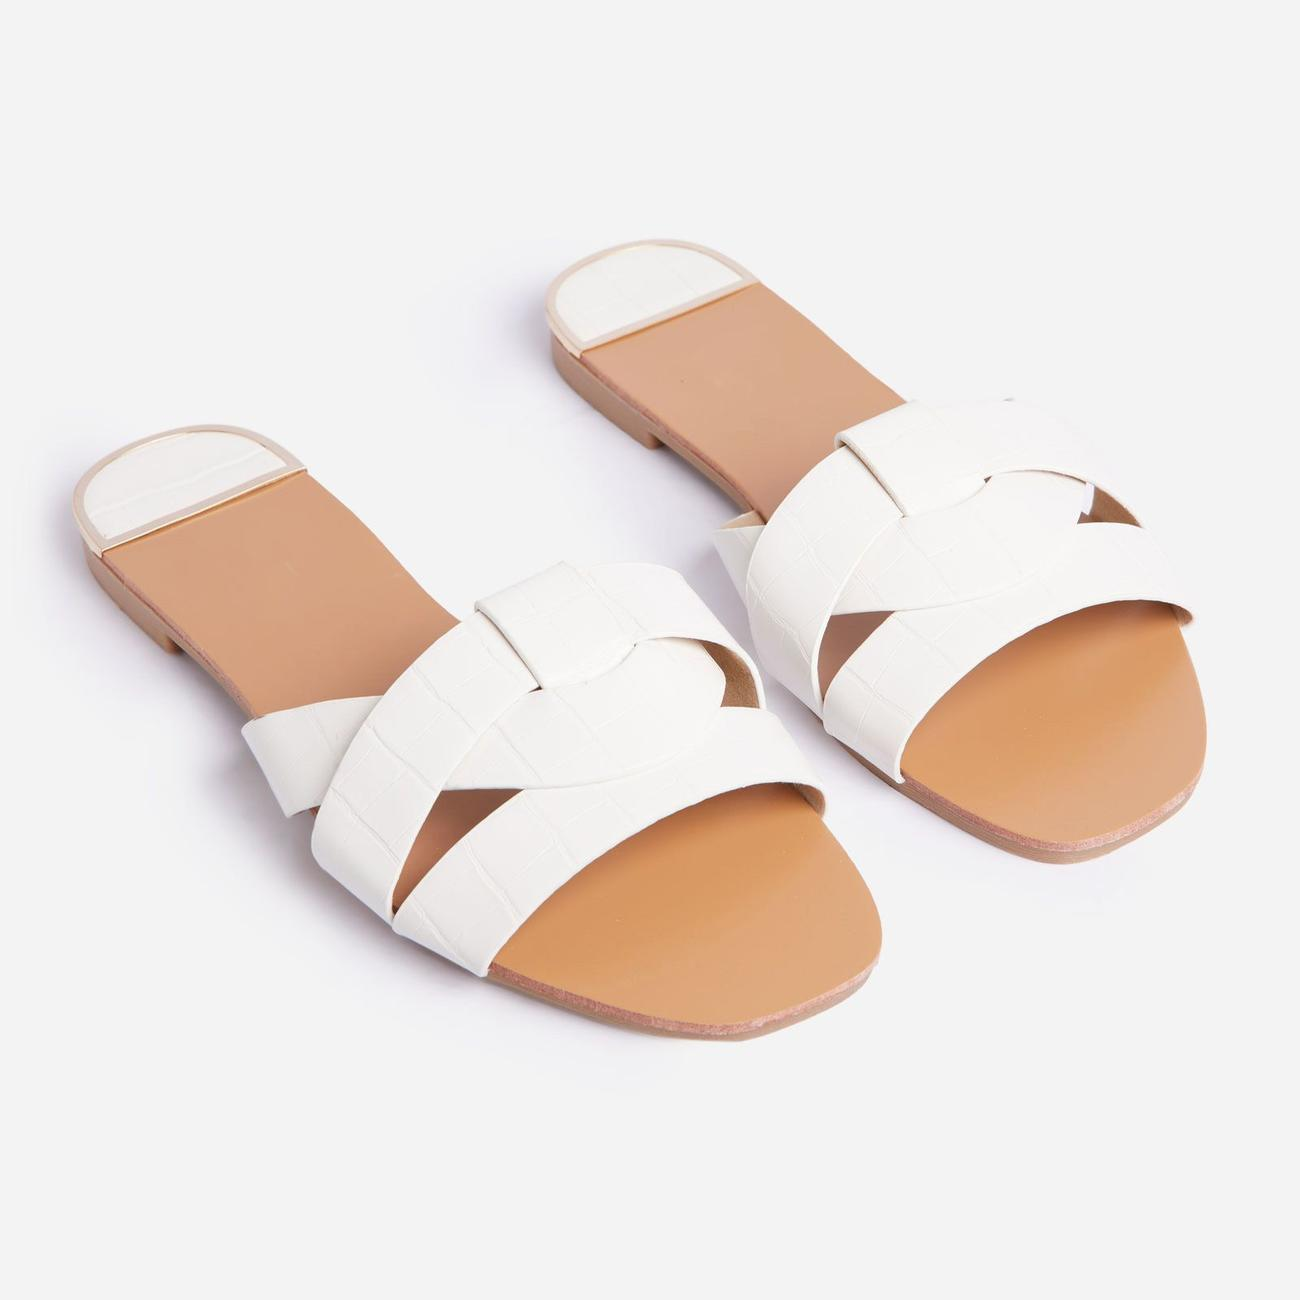 50% Off Gregor Flat Slider Sandal In White Croc Print Faux Leather - Was £19.99, Now £9.99